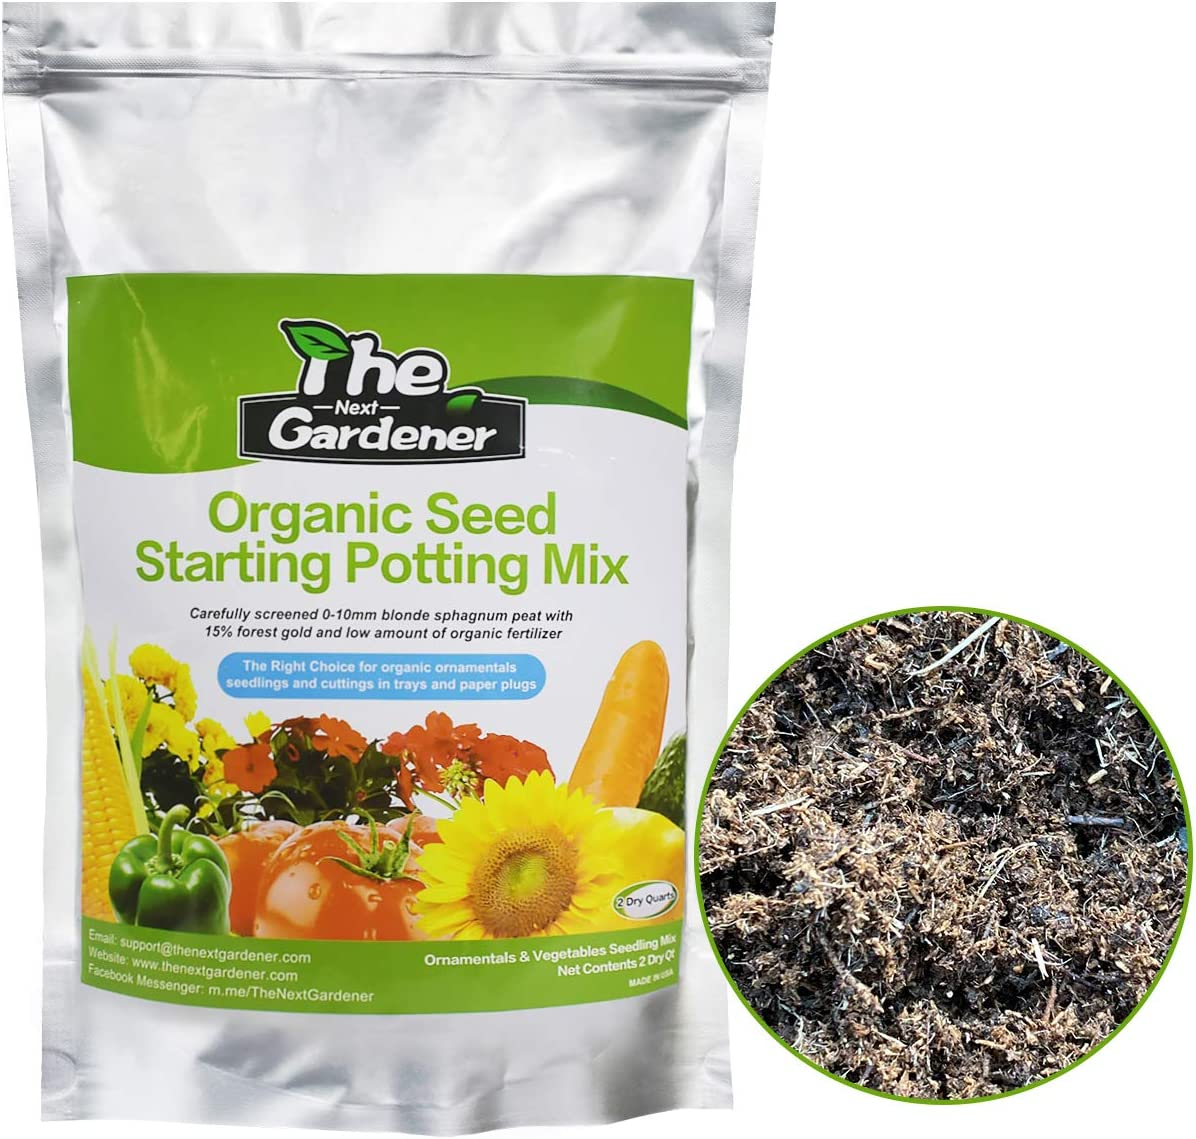 Organic Soil, Seed Starting Potting Mix, Green Seeding Soil Mix for Organic Ornamentals seedlings and cuttings, 2 Dry Quarts